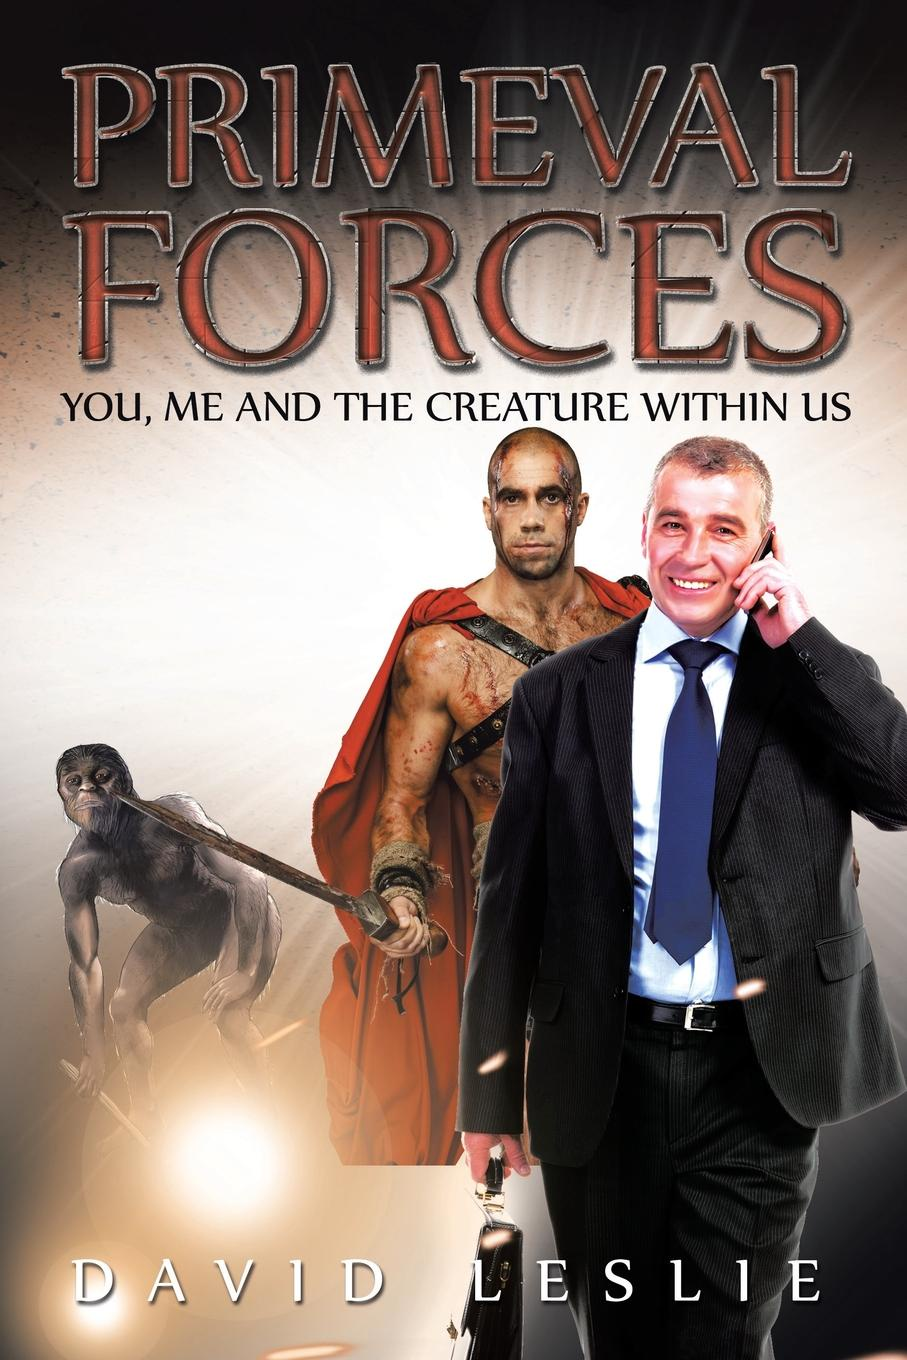 цена на David Leslie Primeval Forces. You, Me and the Creature Within Us